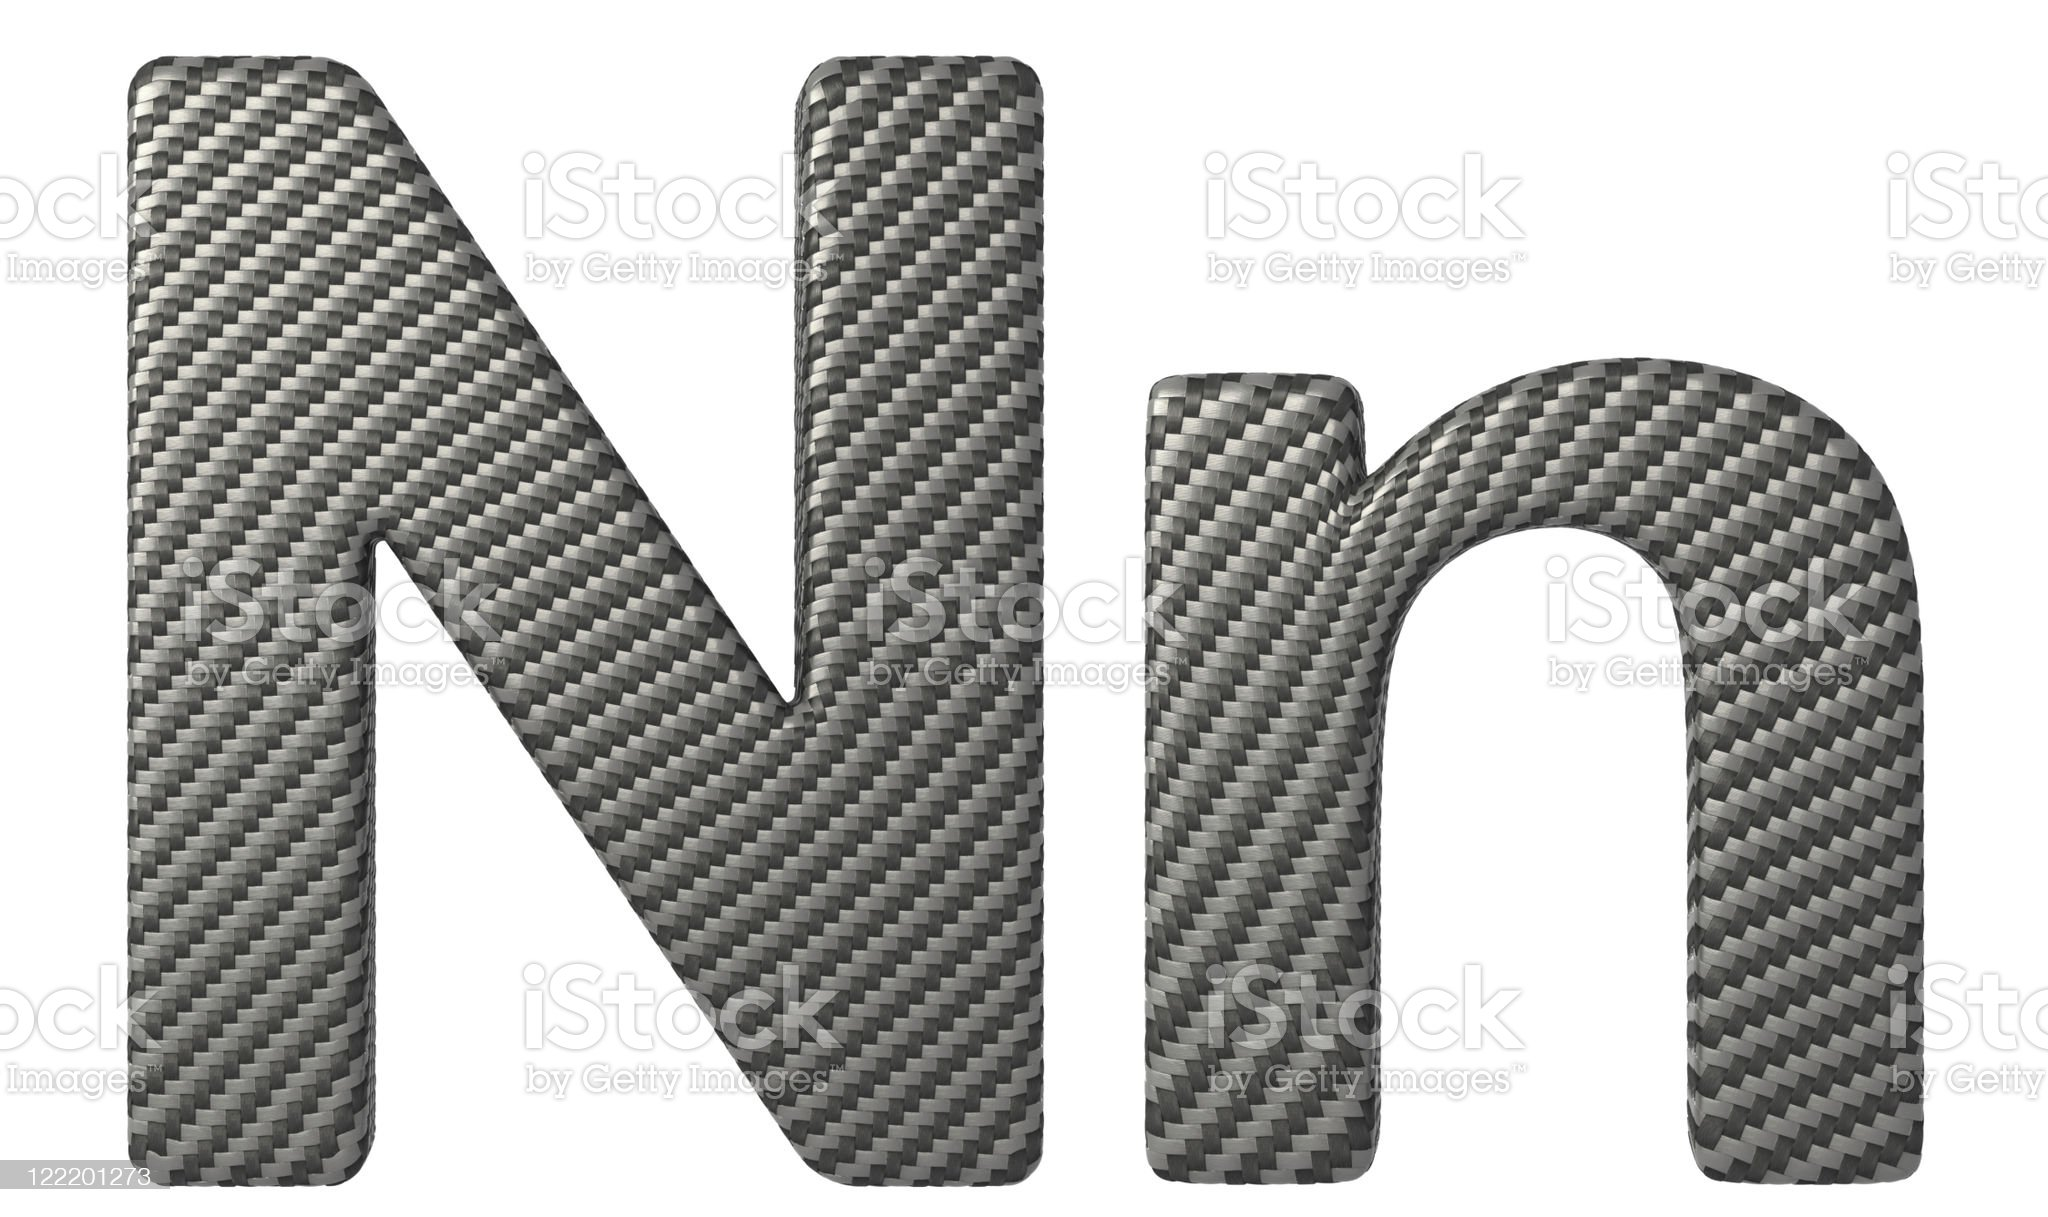 Carbon fiber font N lowercase and capital letters royalty-free stock photo